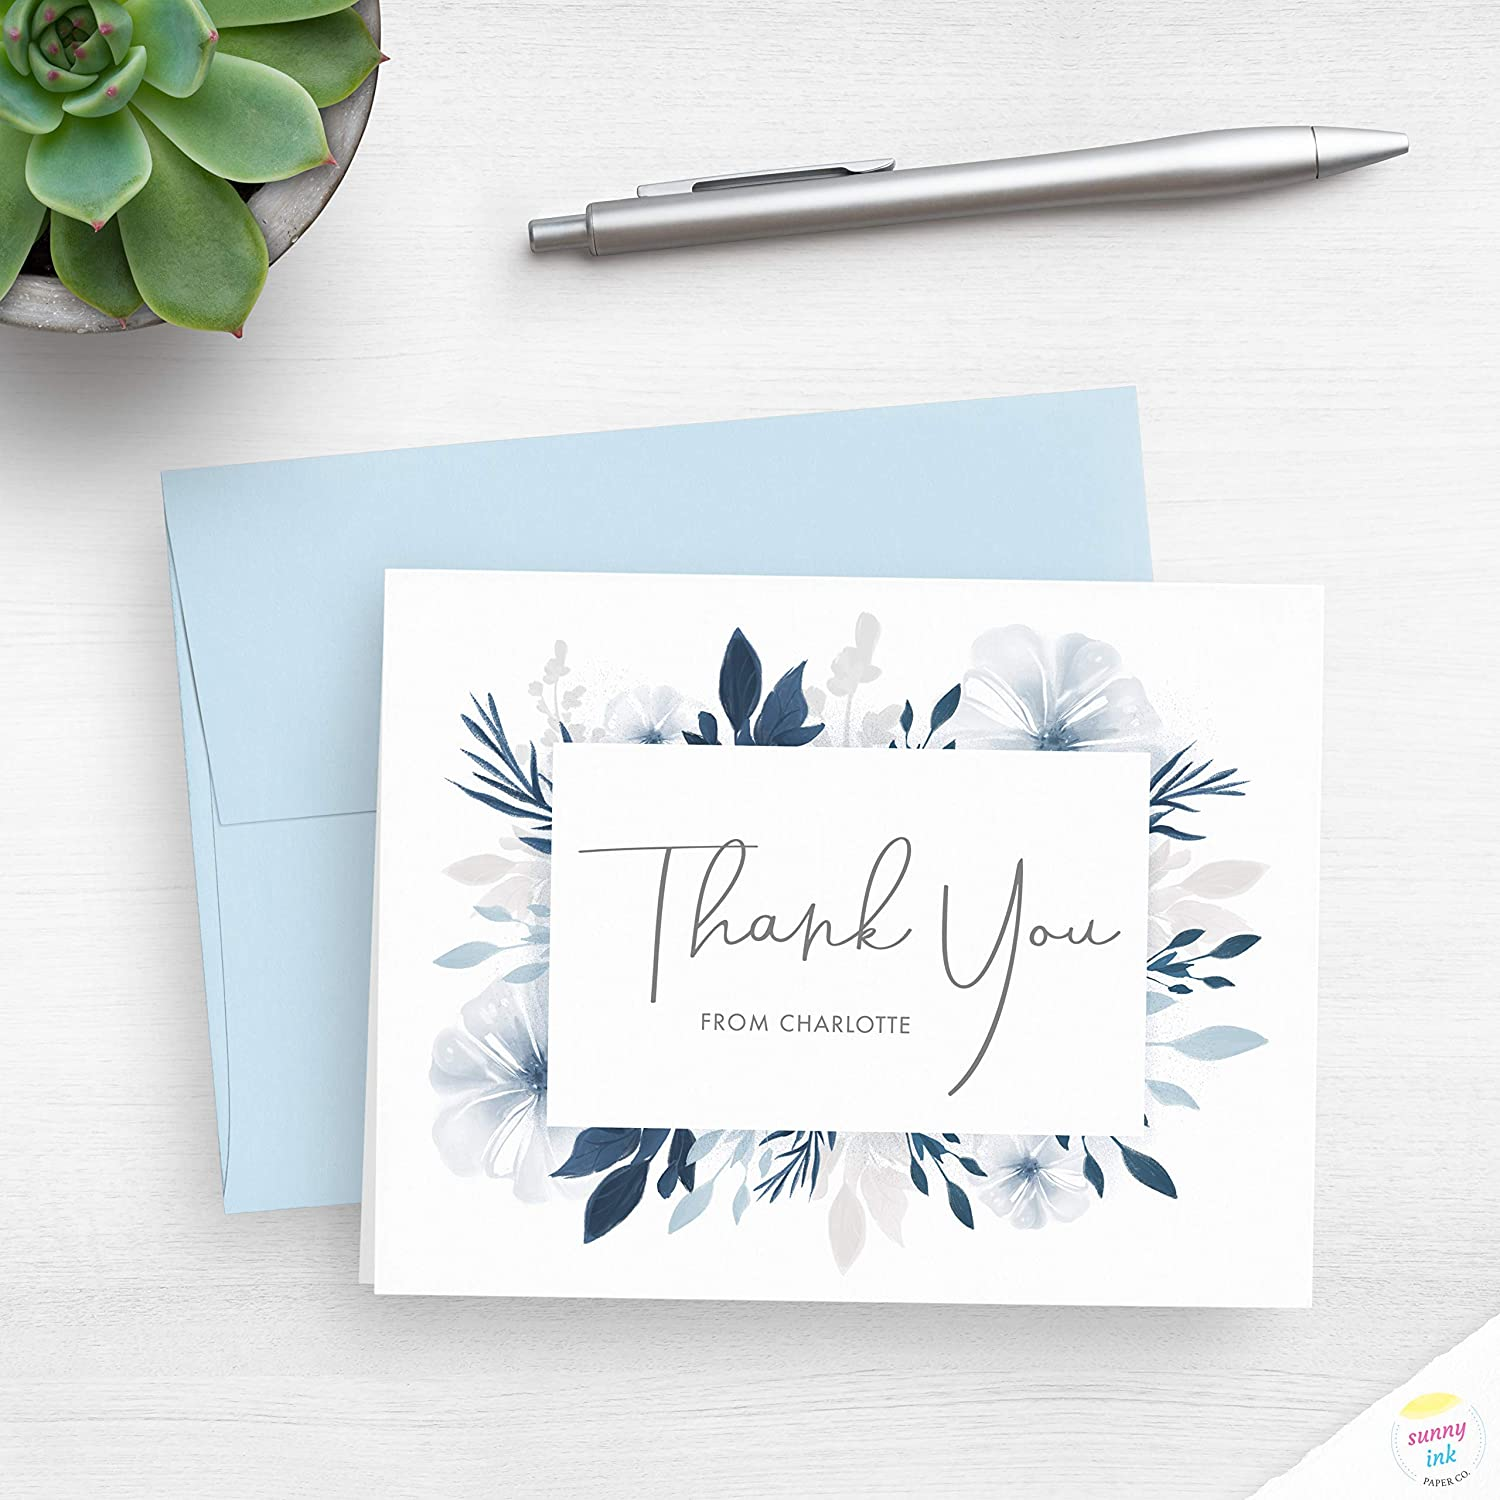 1 year warranty Custom Thank You Free Shipping New Notes - Personali Floral Cards Blue